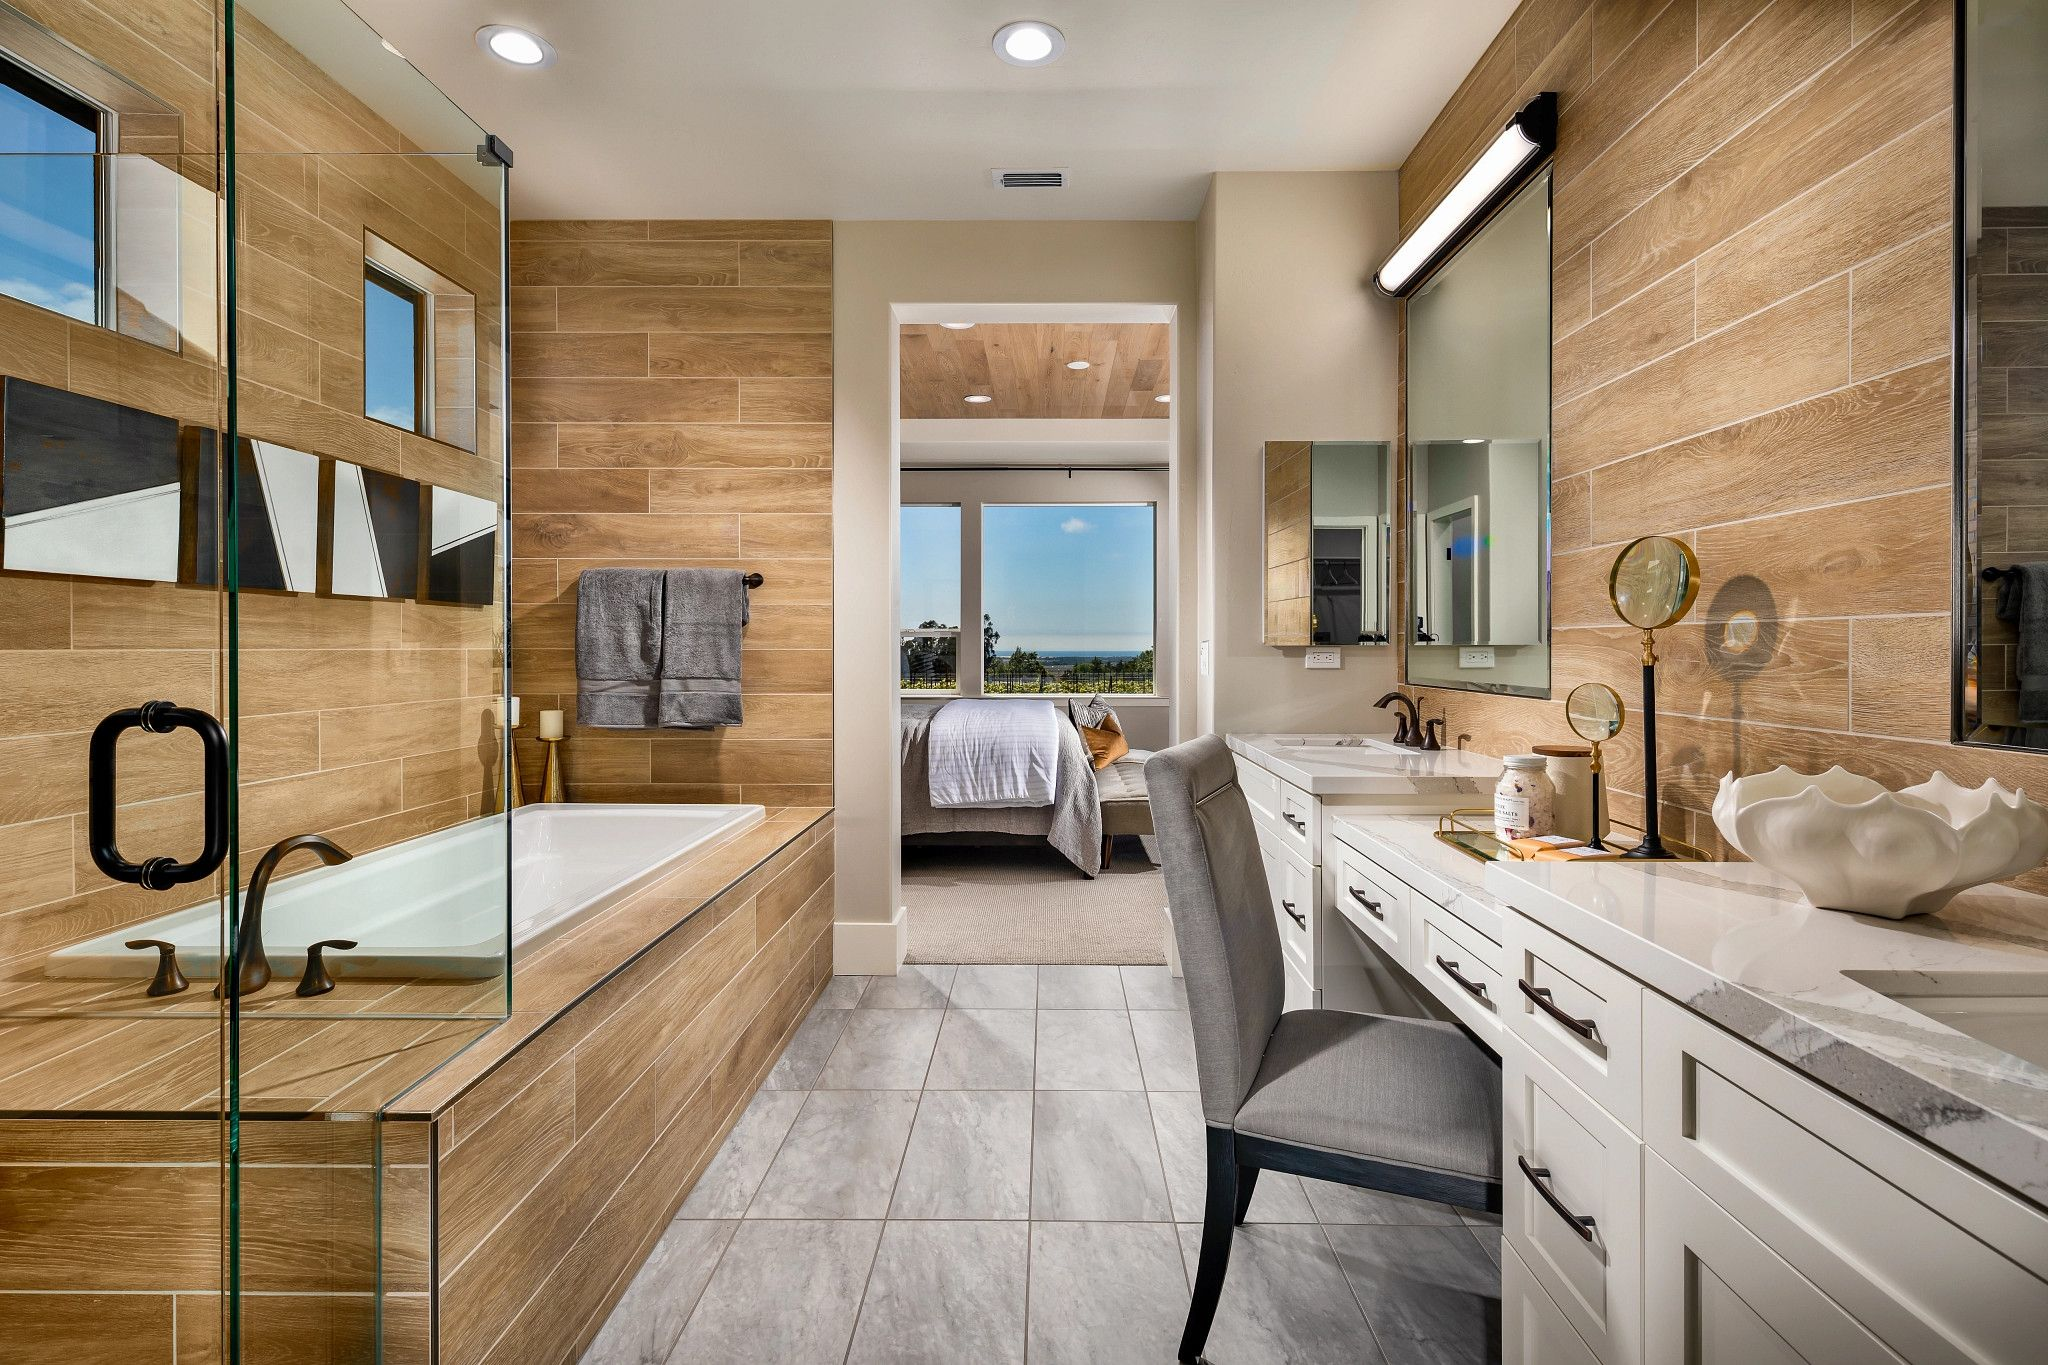 Bathroom featured in the Genova By Shea Homes - Trilogy in San Luis Obispo, CA